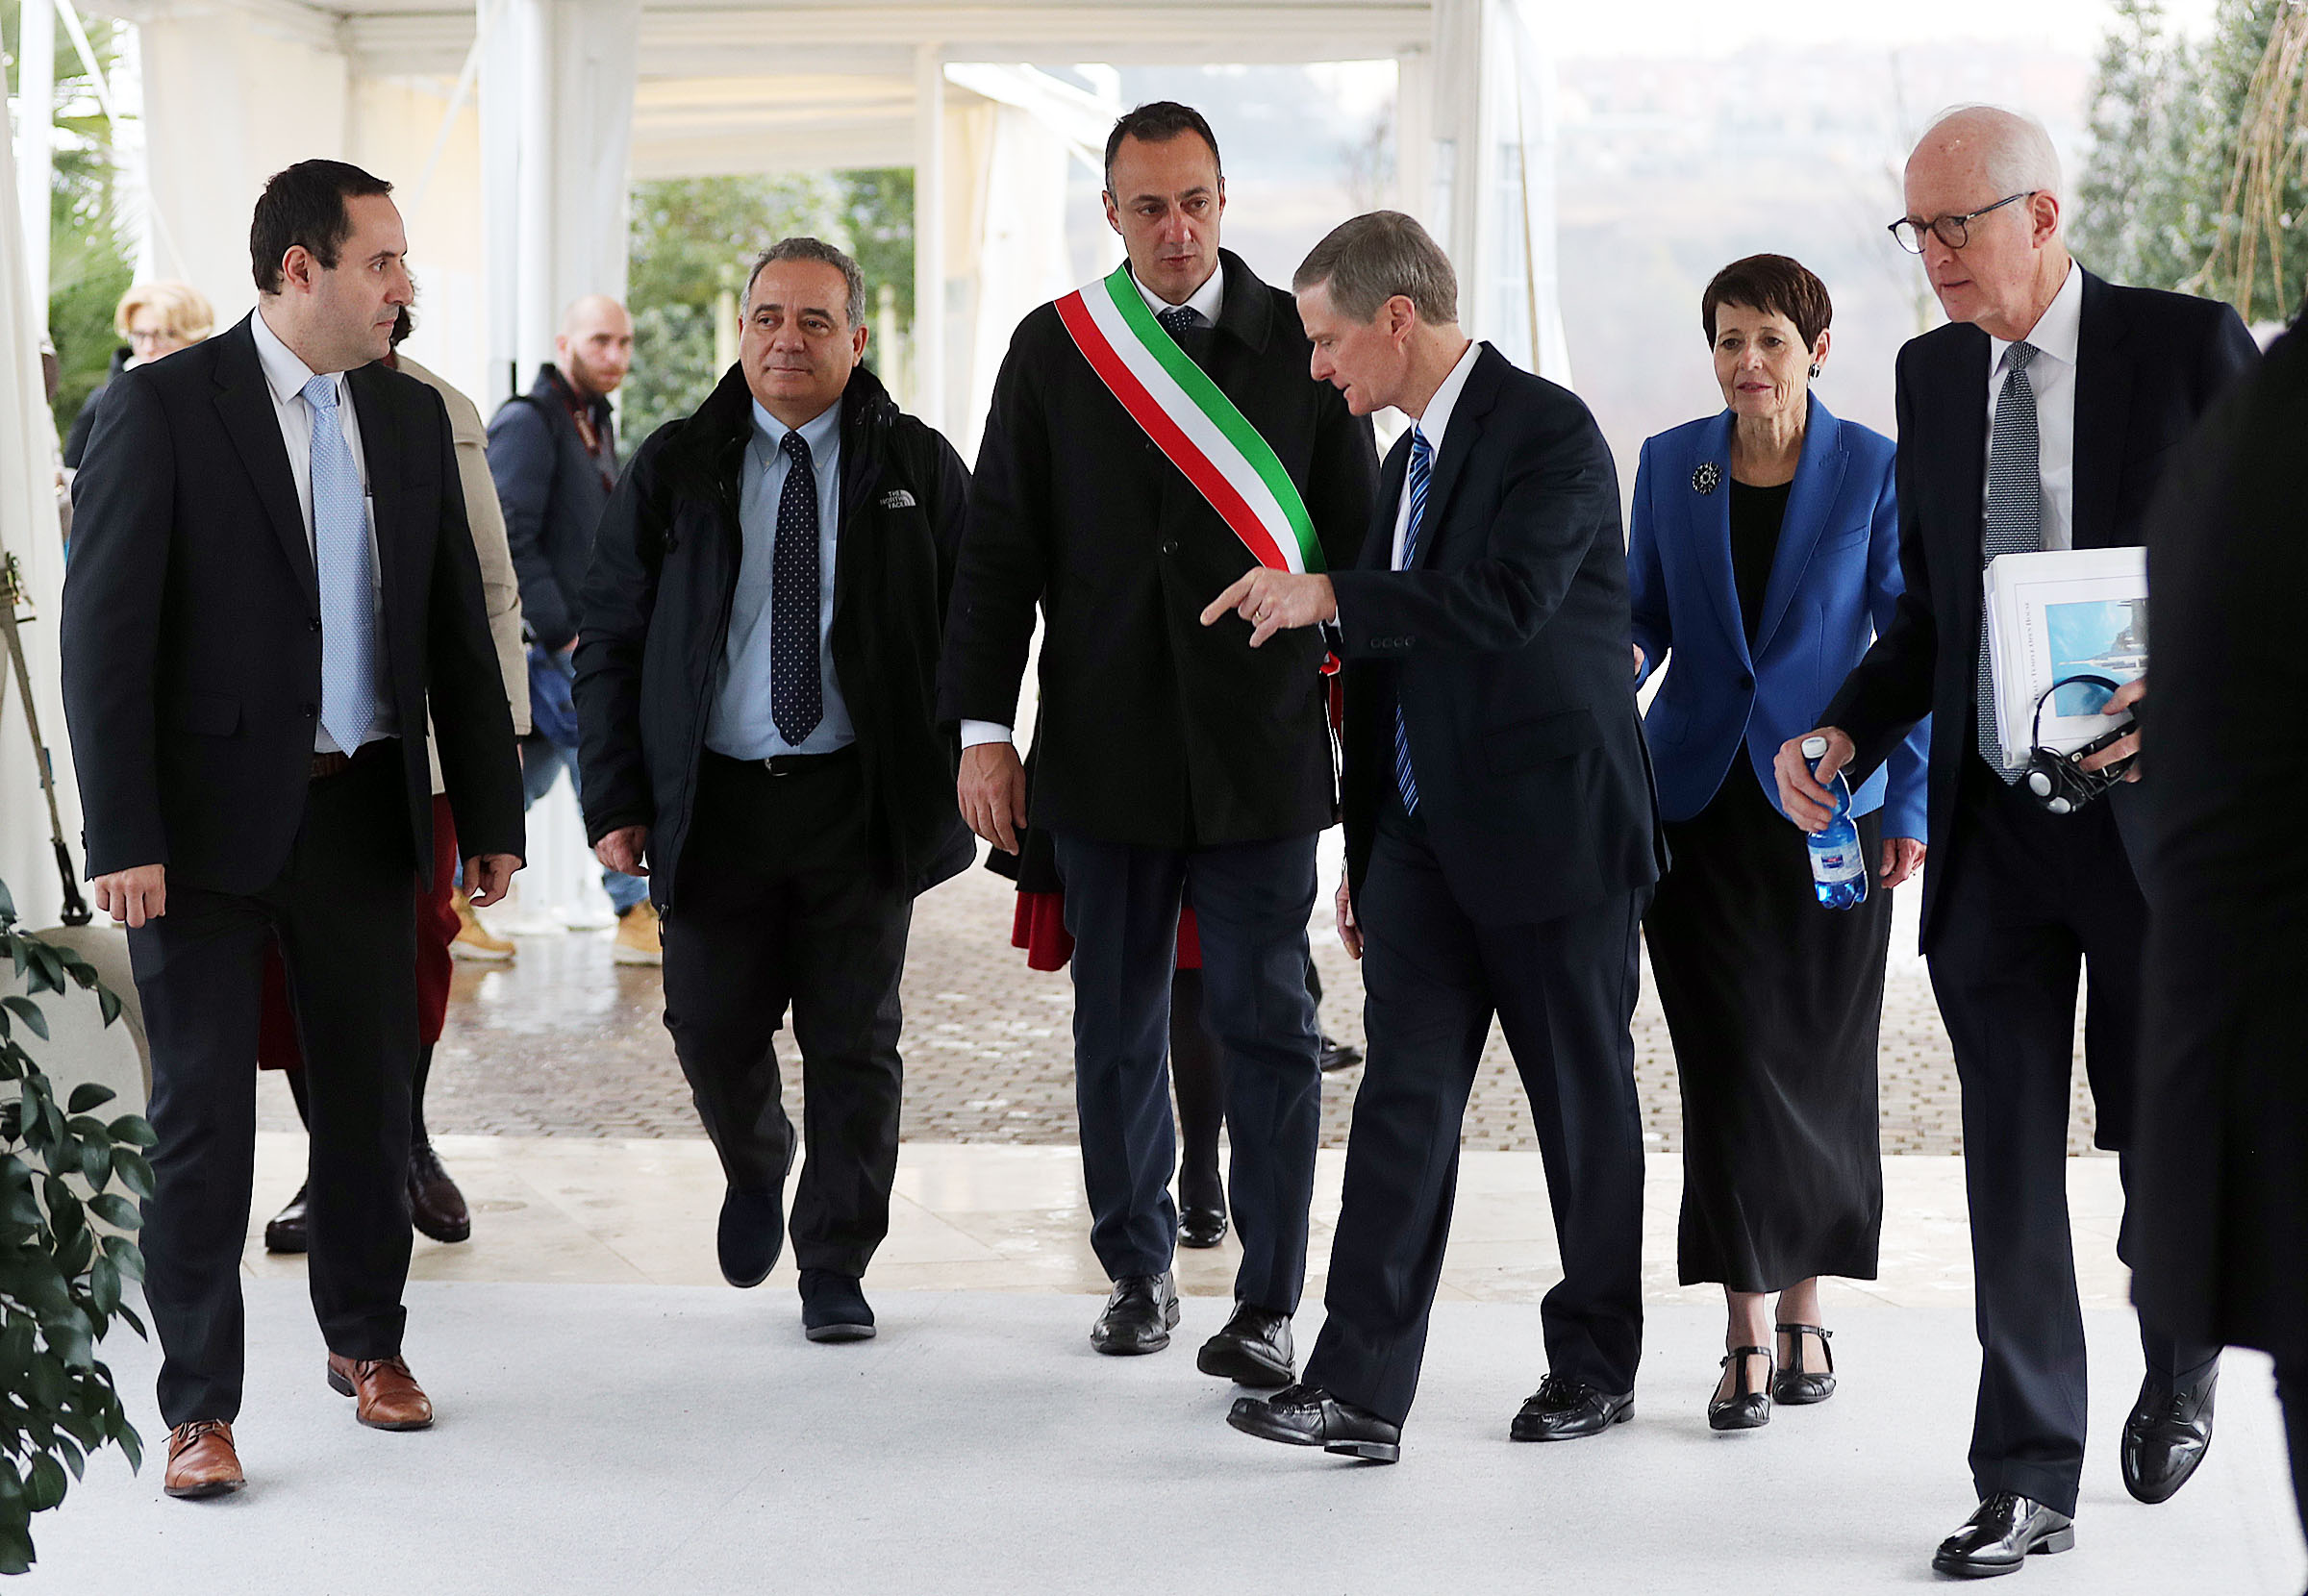 Elder David A. Bednar of the Quorum of the Twelve Apostles of The Church of Jesus Christ of Latter-day Saints leads a tour during the Rome Italy Temple open house on Monday, Jan. 14, 2019. Third from left is President President Marcello De Vito, president of the Rome City Council. Second from left is President Giovanni Caudo, president of the Third Municipality of Rome.